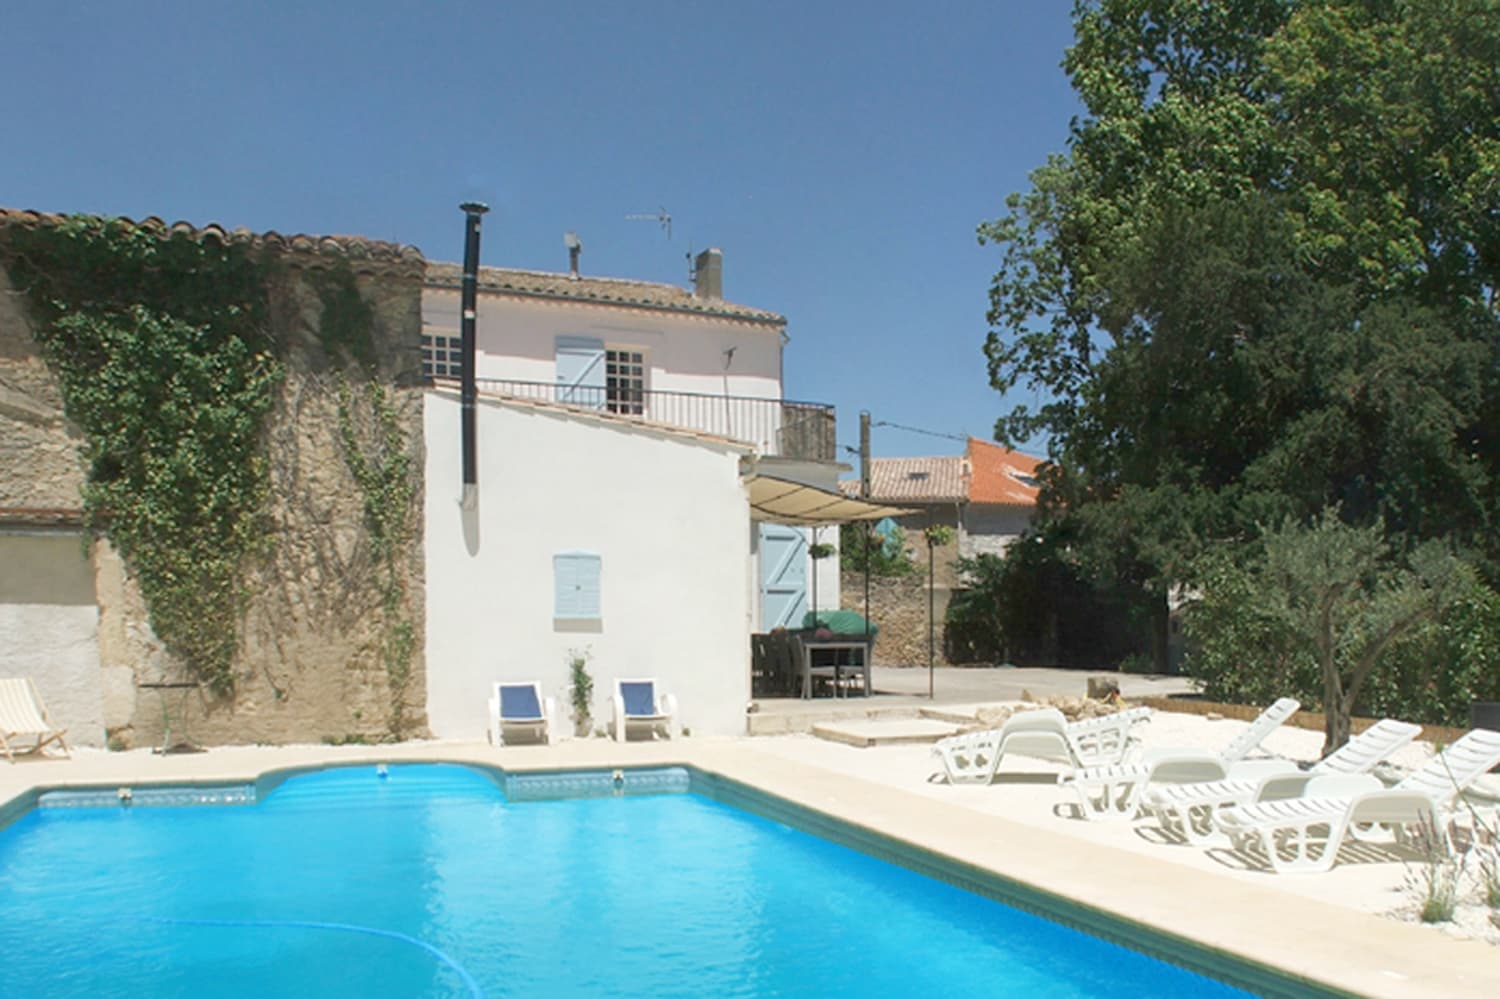 Vacation home in Languedoc